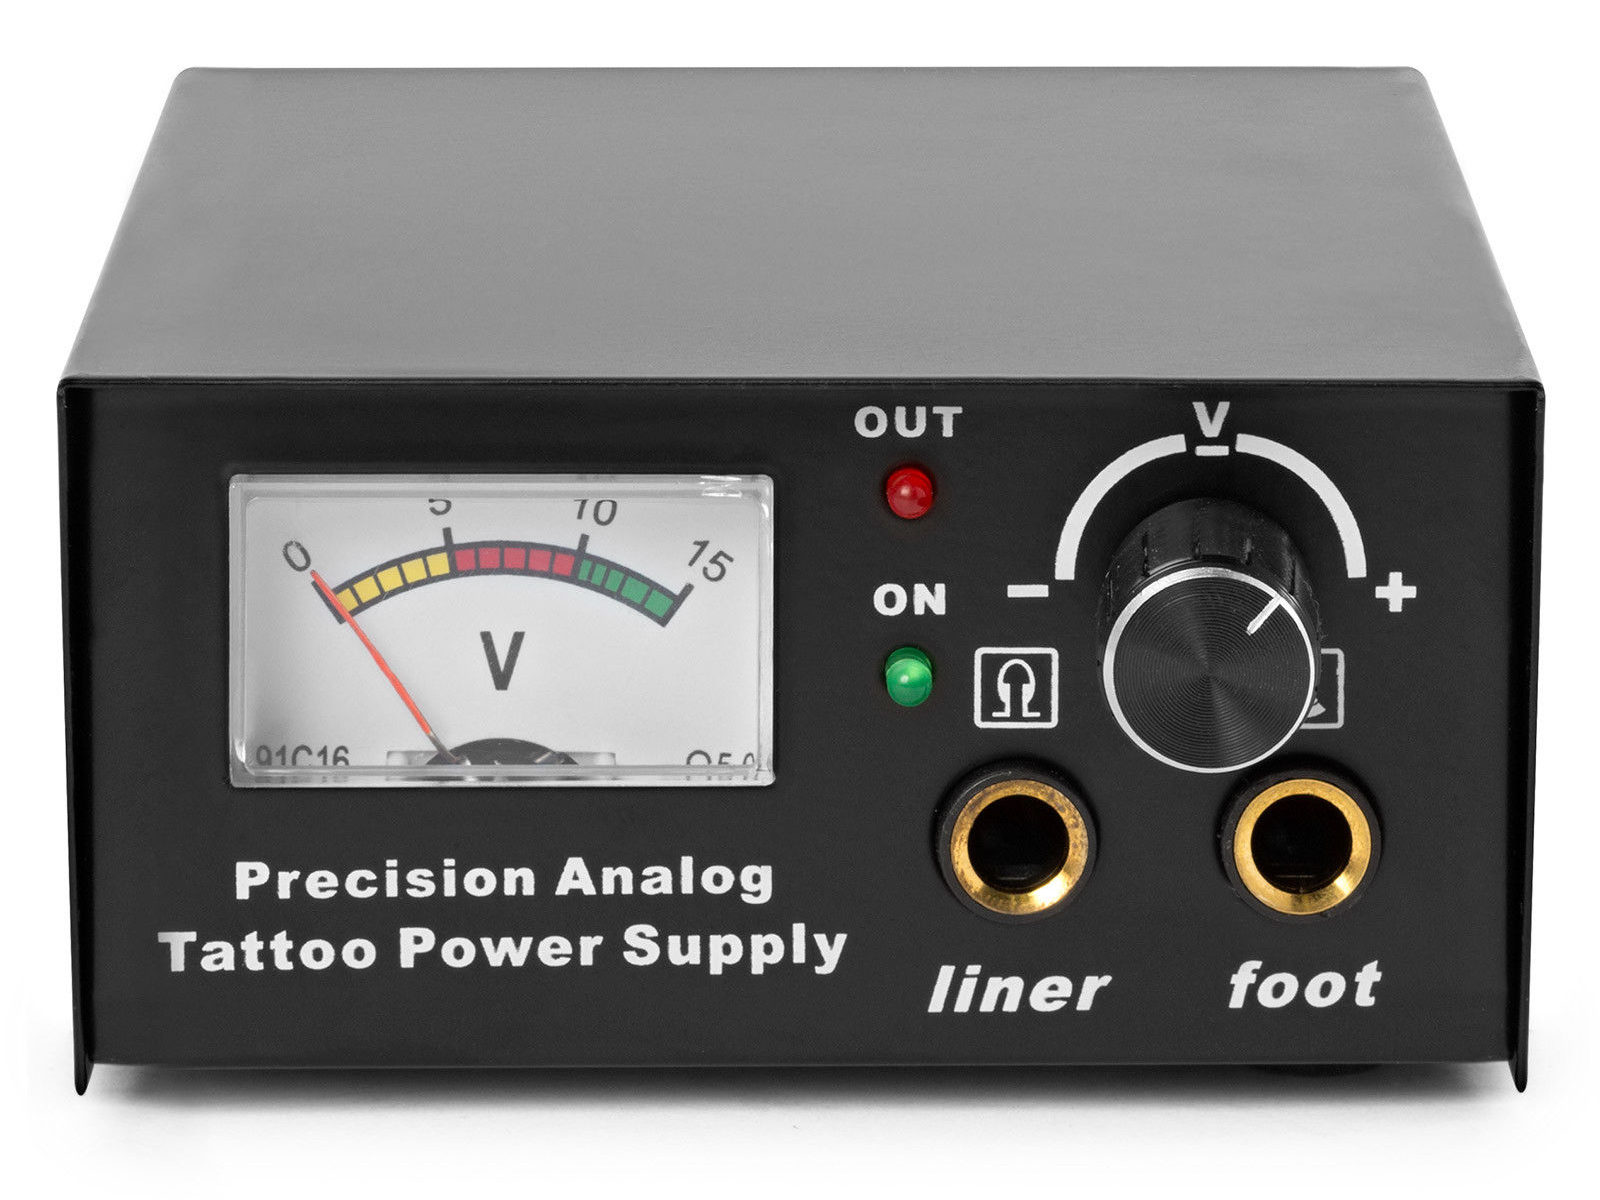 Low Budget Bench Power Supply | The Smell of Molten Projects in the